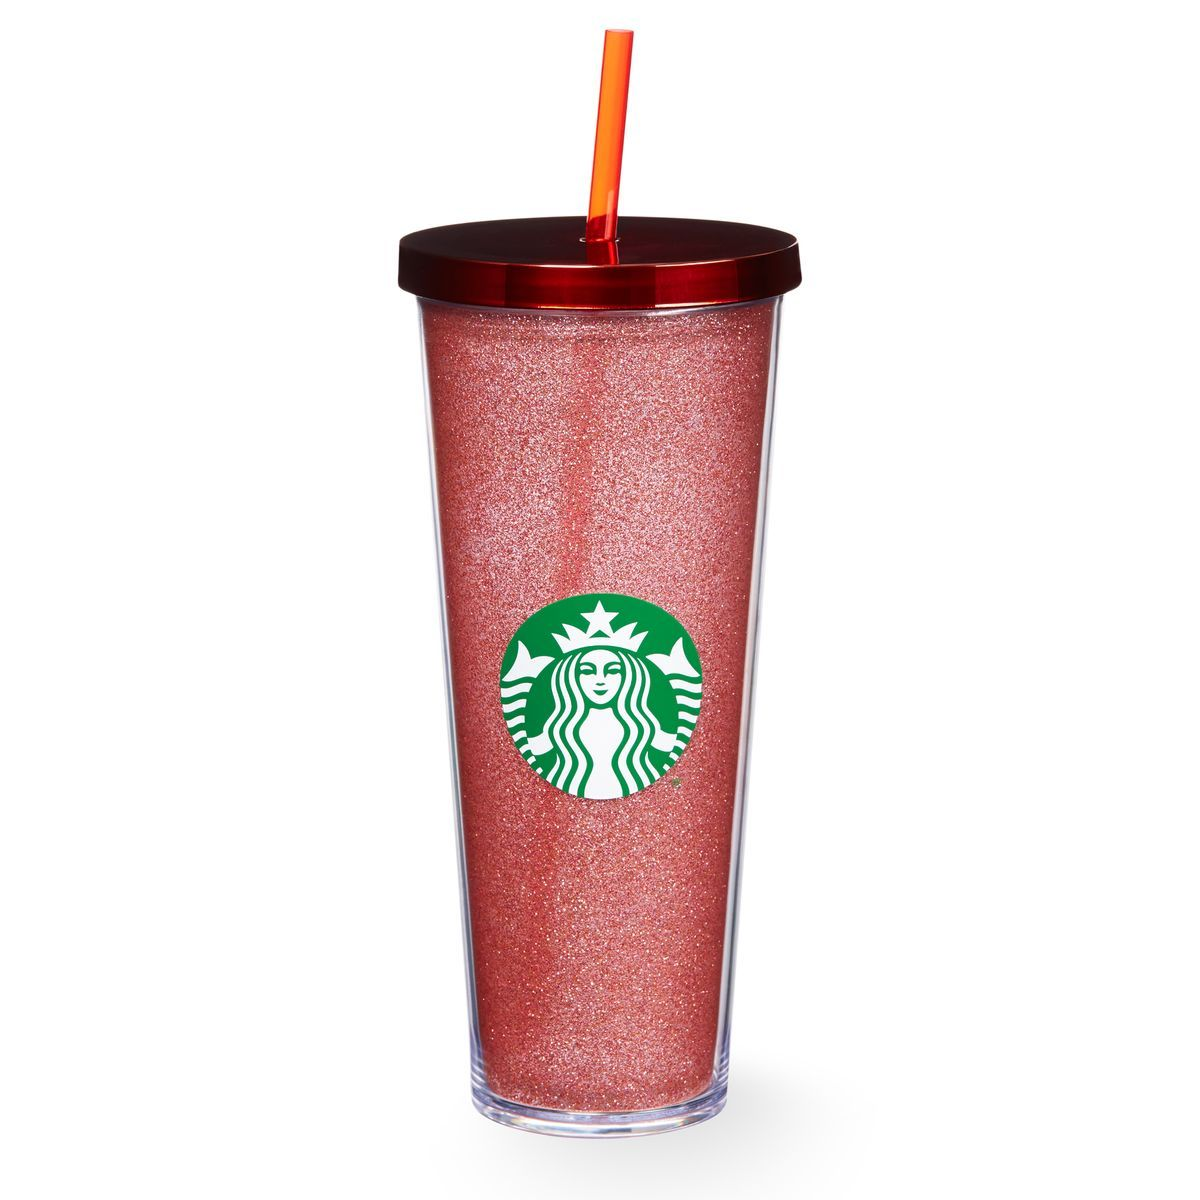 A sturdy, Ventisize plastic Cold Cup covered with red